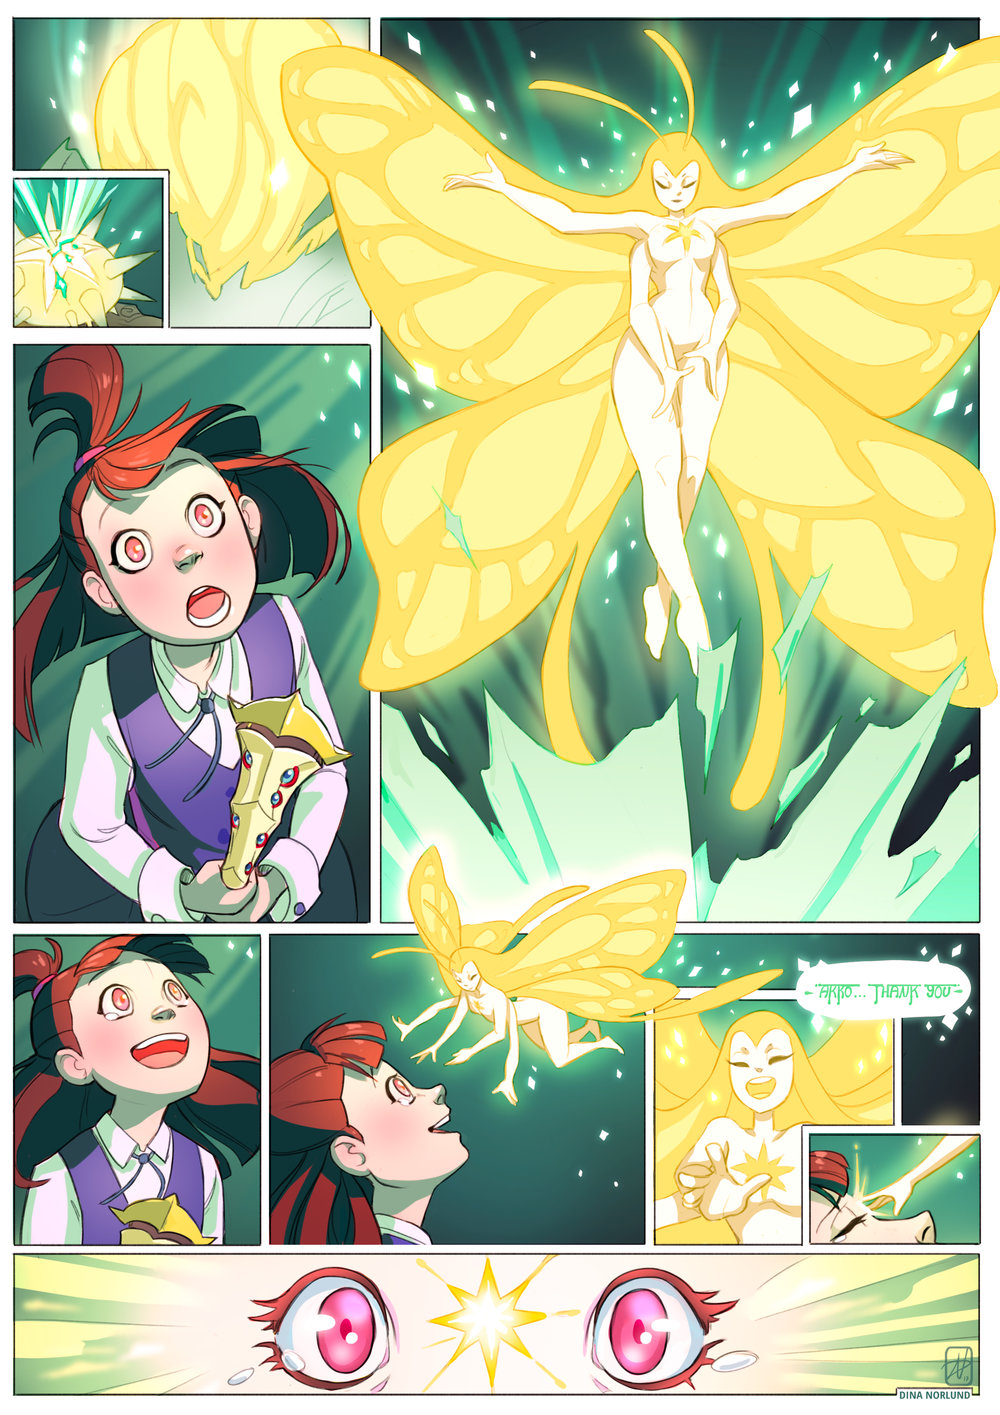 akko_and_the_butterflies_fancomic2 copy copy.jpg